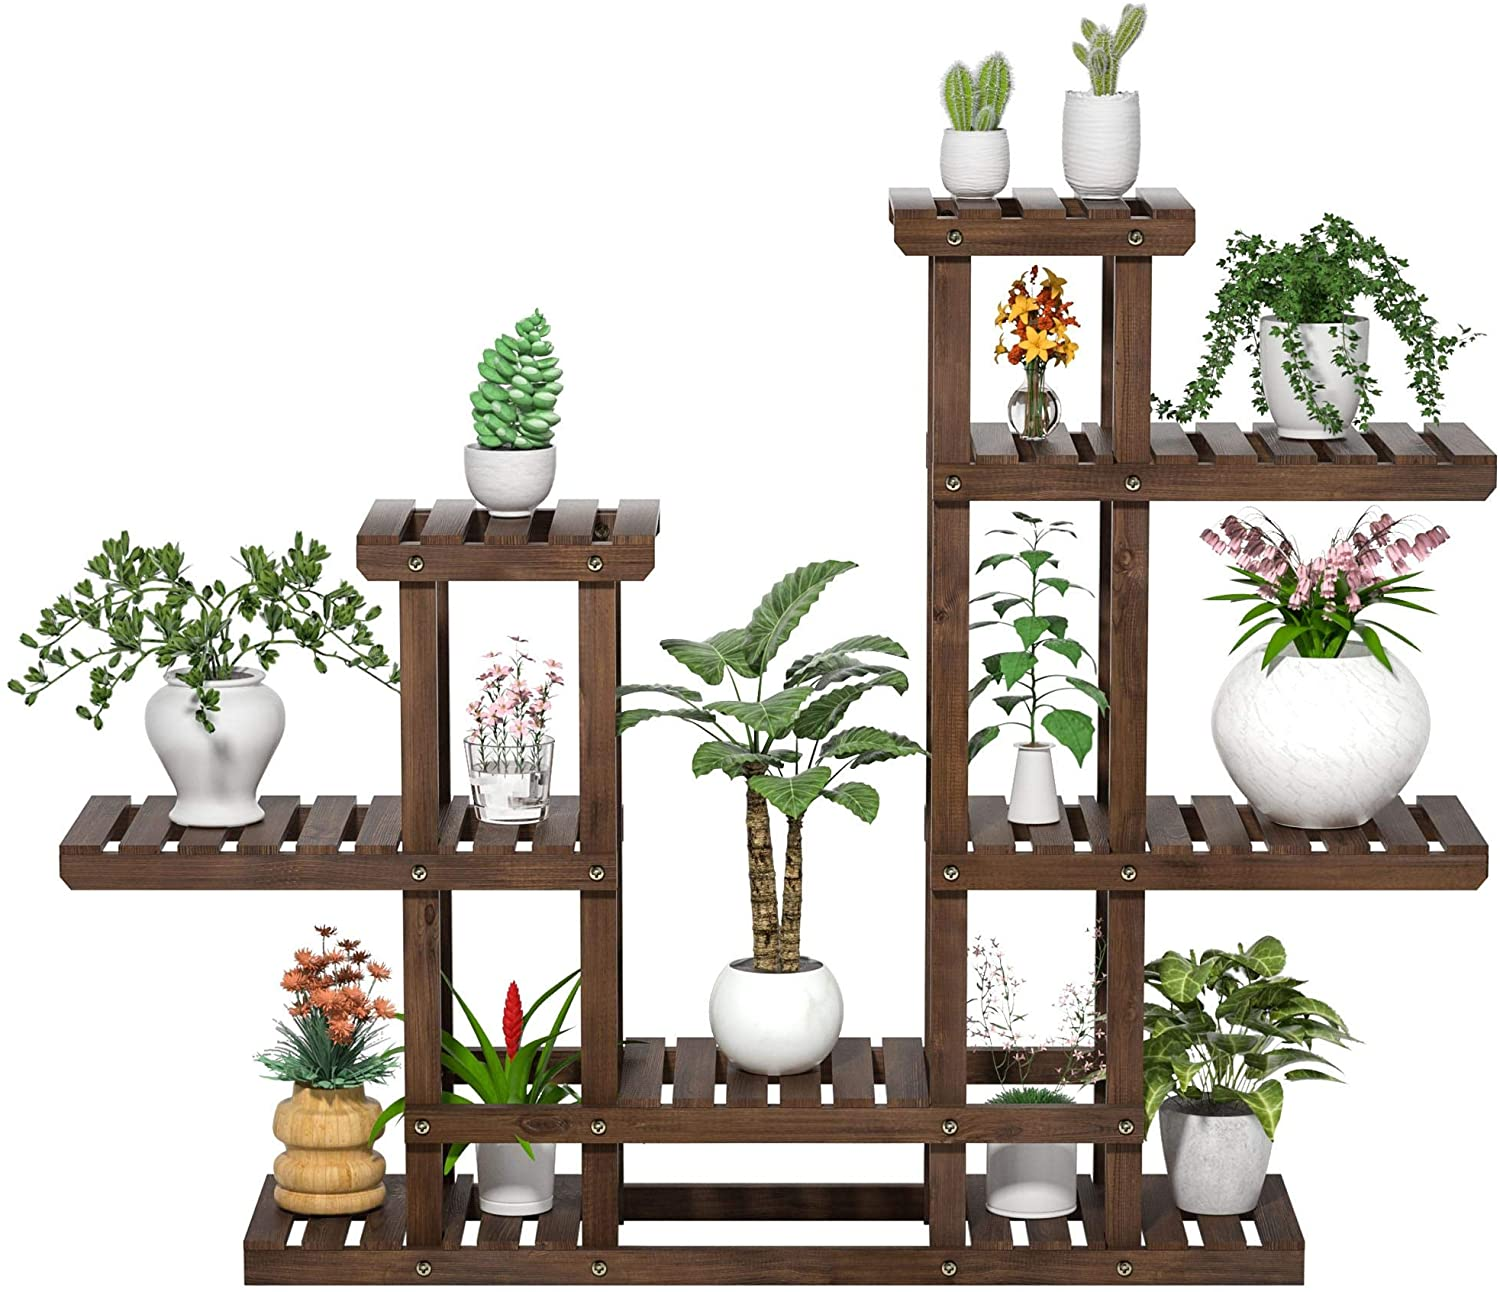 YAHEETECH 6 Tier Plant Stand Rack Shelf-Planter Holder Flower Pots Shelving Unit Indoor/Outdoor for Multiple Plants Display Multi-Role Multicapa Vegetal Solid Wood Brown 47.5 x 10 x 38in